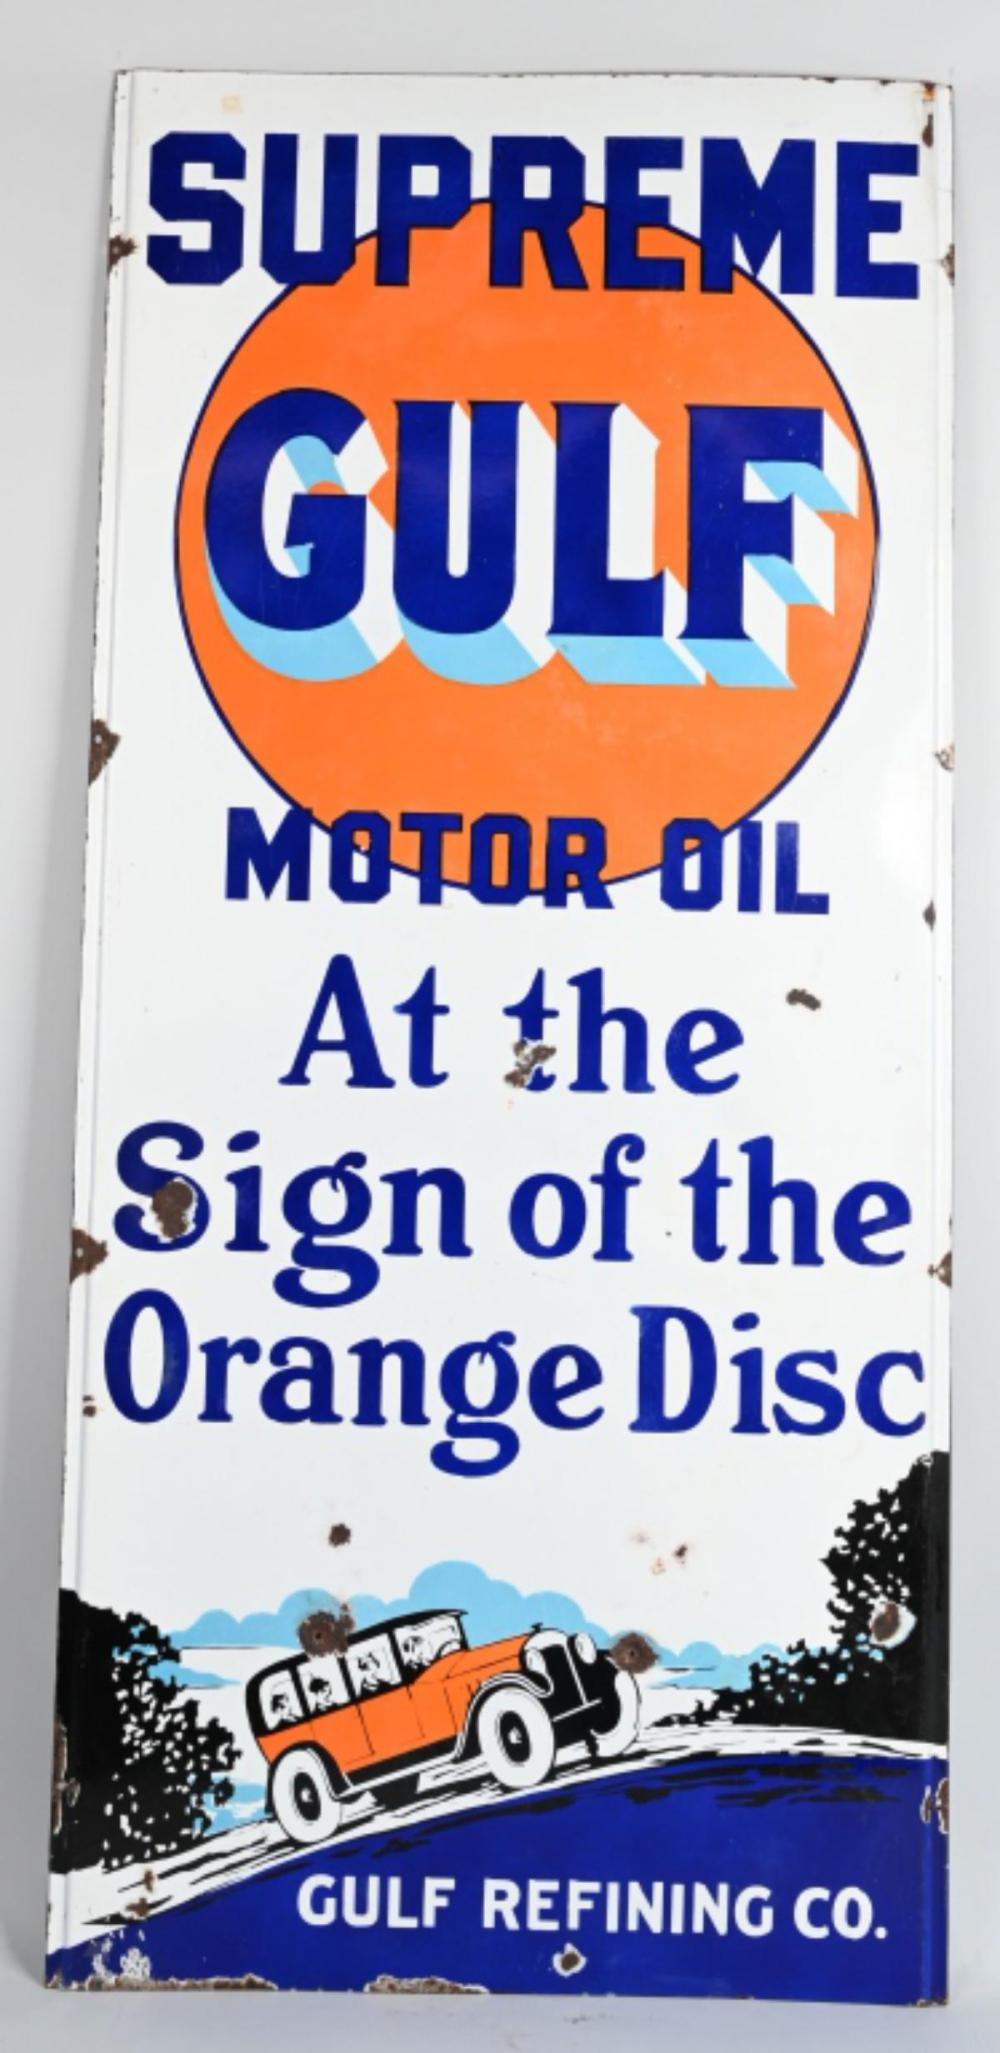 Supreme Gulf Motor Oil At the Sign of the Orange D